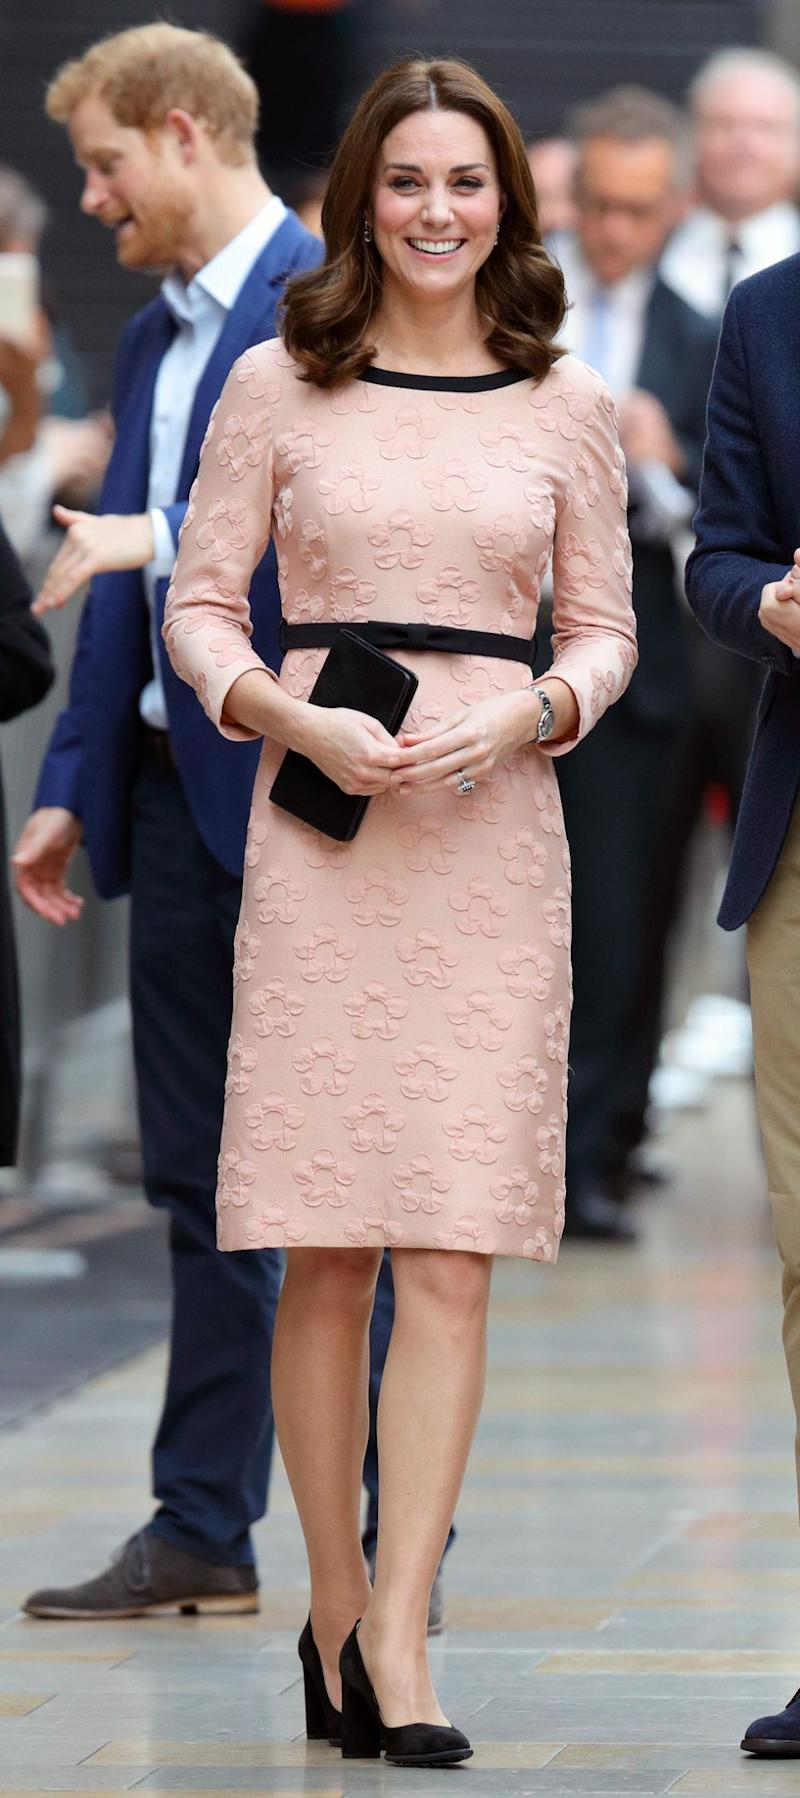 According to New Idea, Queen Elizabeth is likely to abdicate and hand over the throne to Prince William and Kate Middleton in the next few months – meaning Kate would still be pregnant when she becomes Queen. Photo: Getty Images